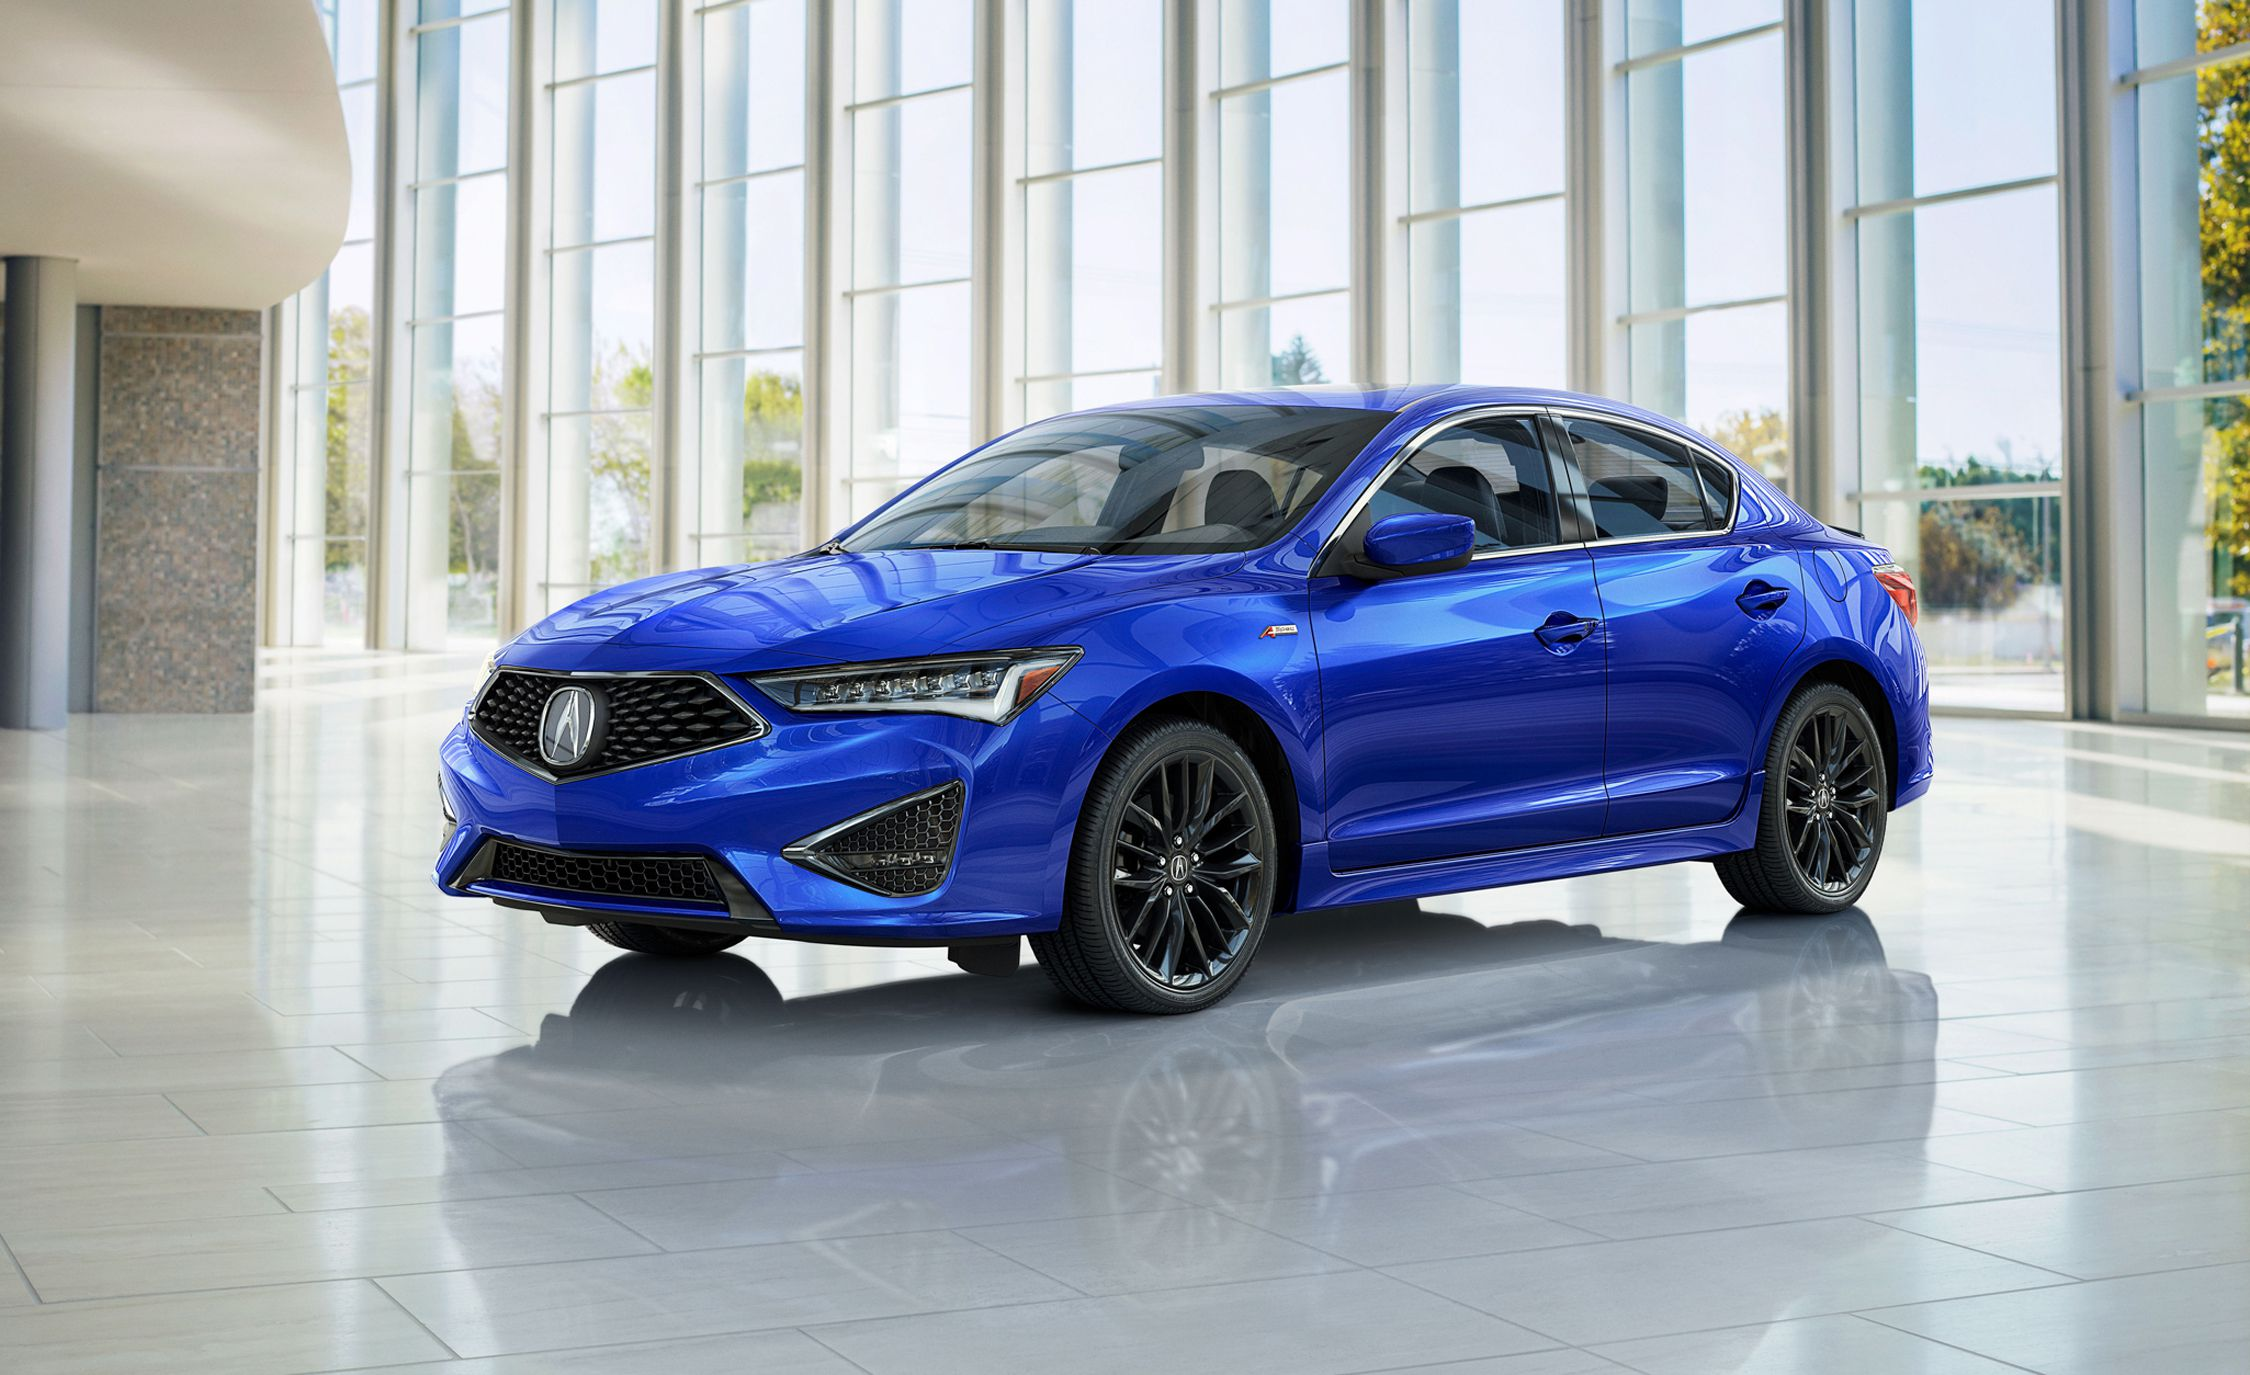 64 New 2020 Acura ILX Photos